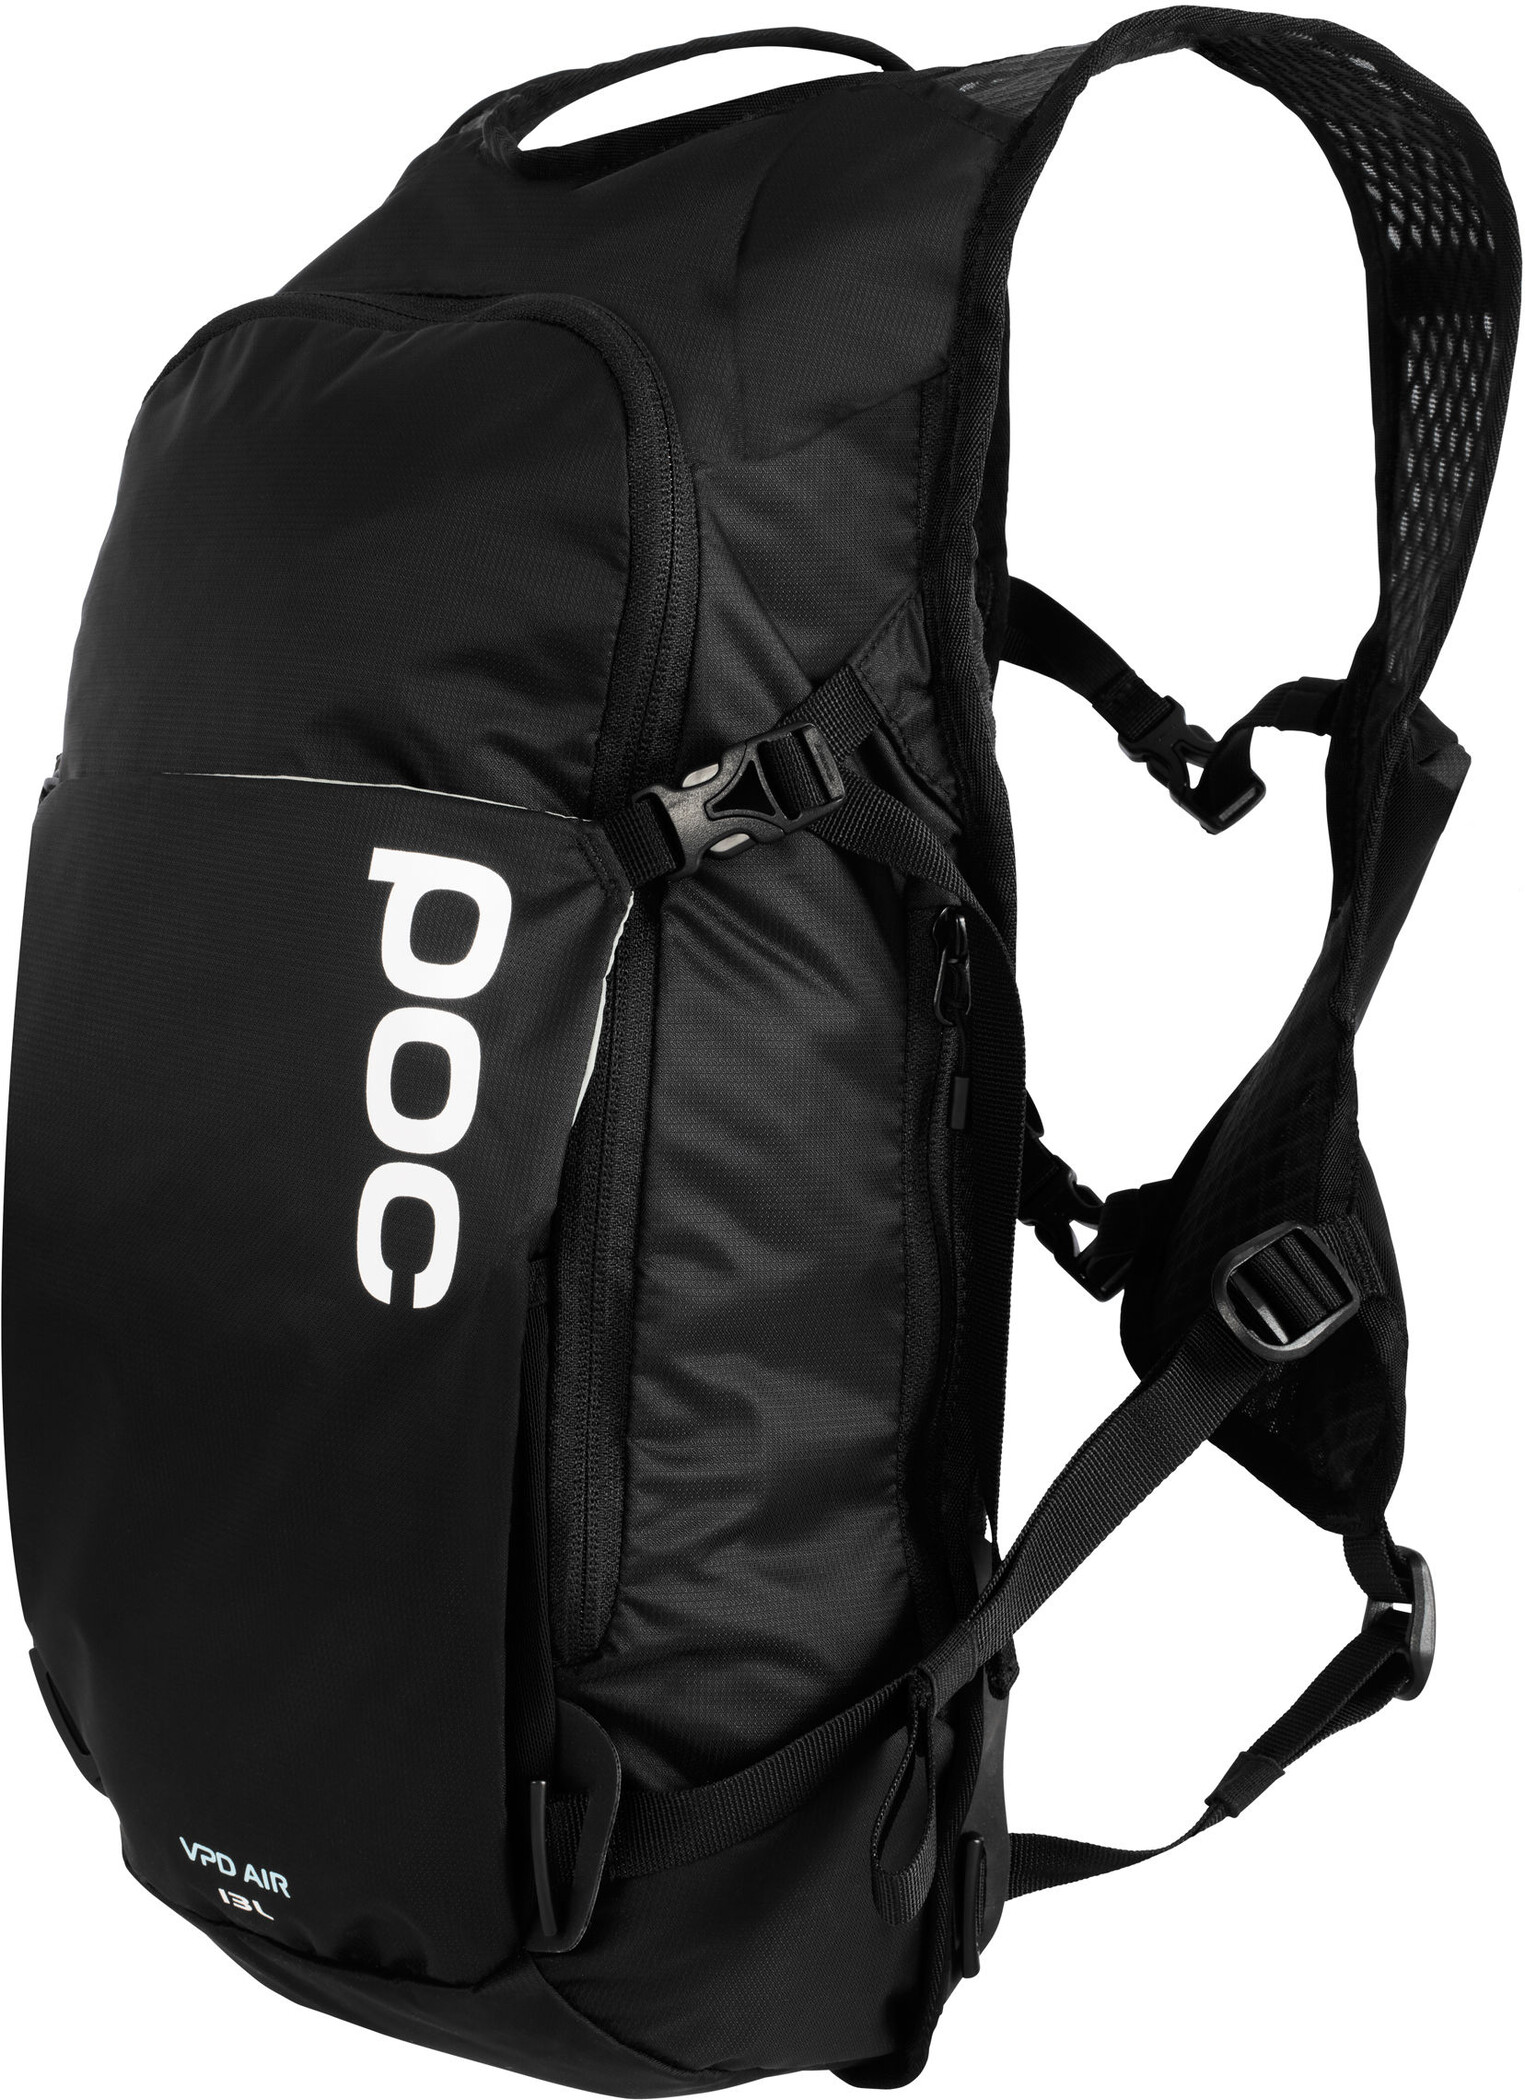 the latest a01c4 5f912 POC Spine VPD Air 13 Backpack uranium black.jpg